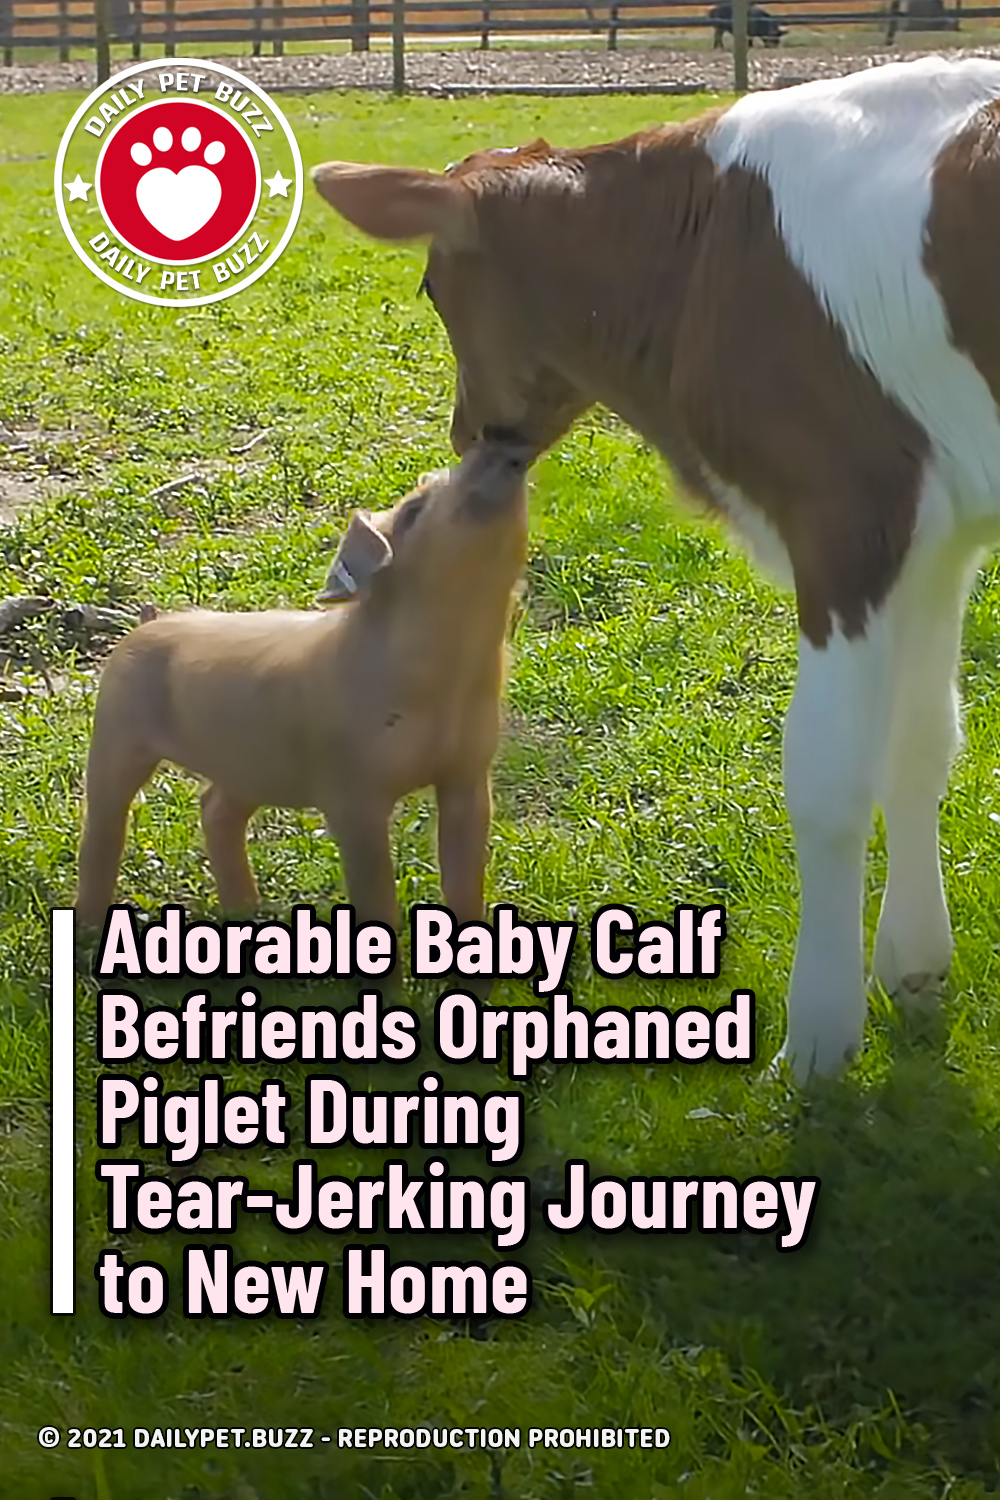 Adorable Baby Calf Befriends Orphaned Piglet During Tear-Jerking Journey to New Home